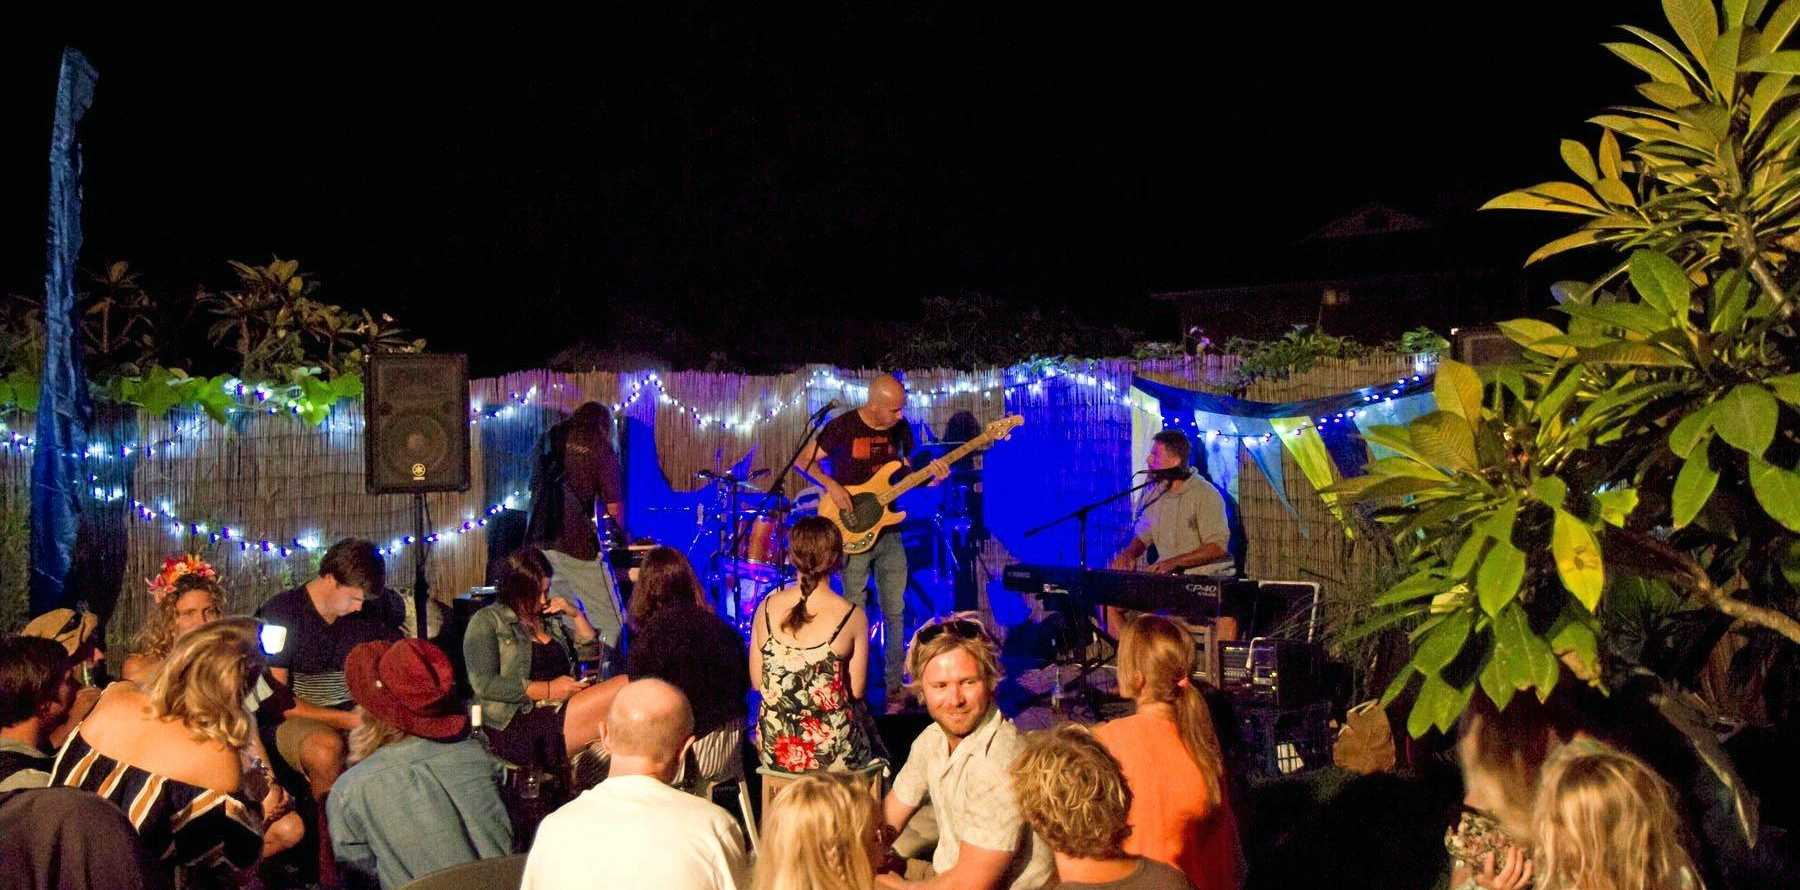 CHILLED OUT: The vibe went deep into the night with Fawlty Dogs at the Secret Garden Party event for the Surfing the Coldstream festival.